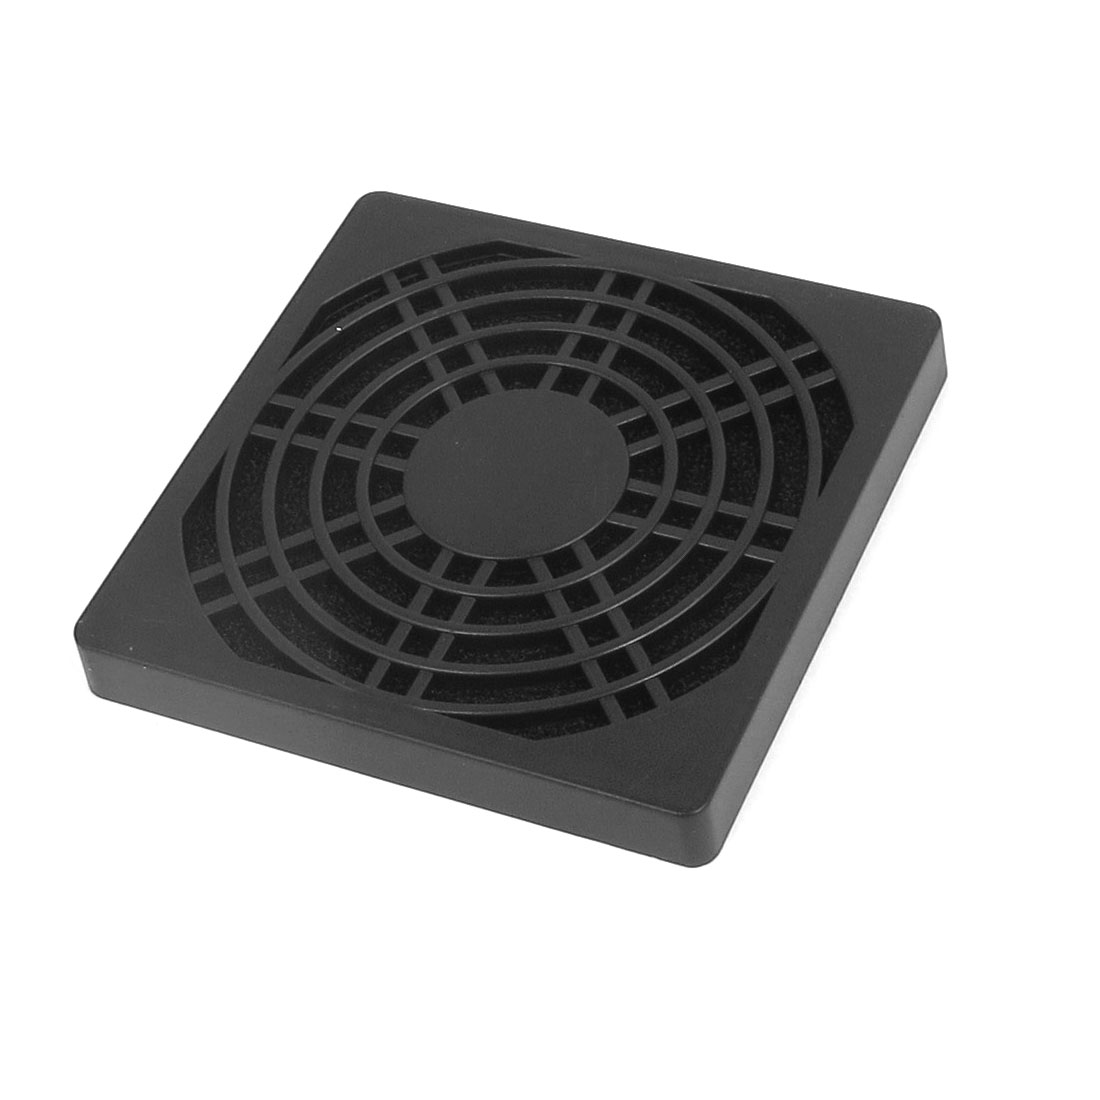 86mm x 86mm Black Plastic Square Shaped Computer PC Dustproof Cooler Fan Case Cover Dust Filter Protector Mesh